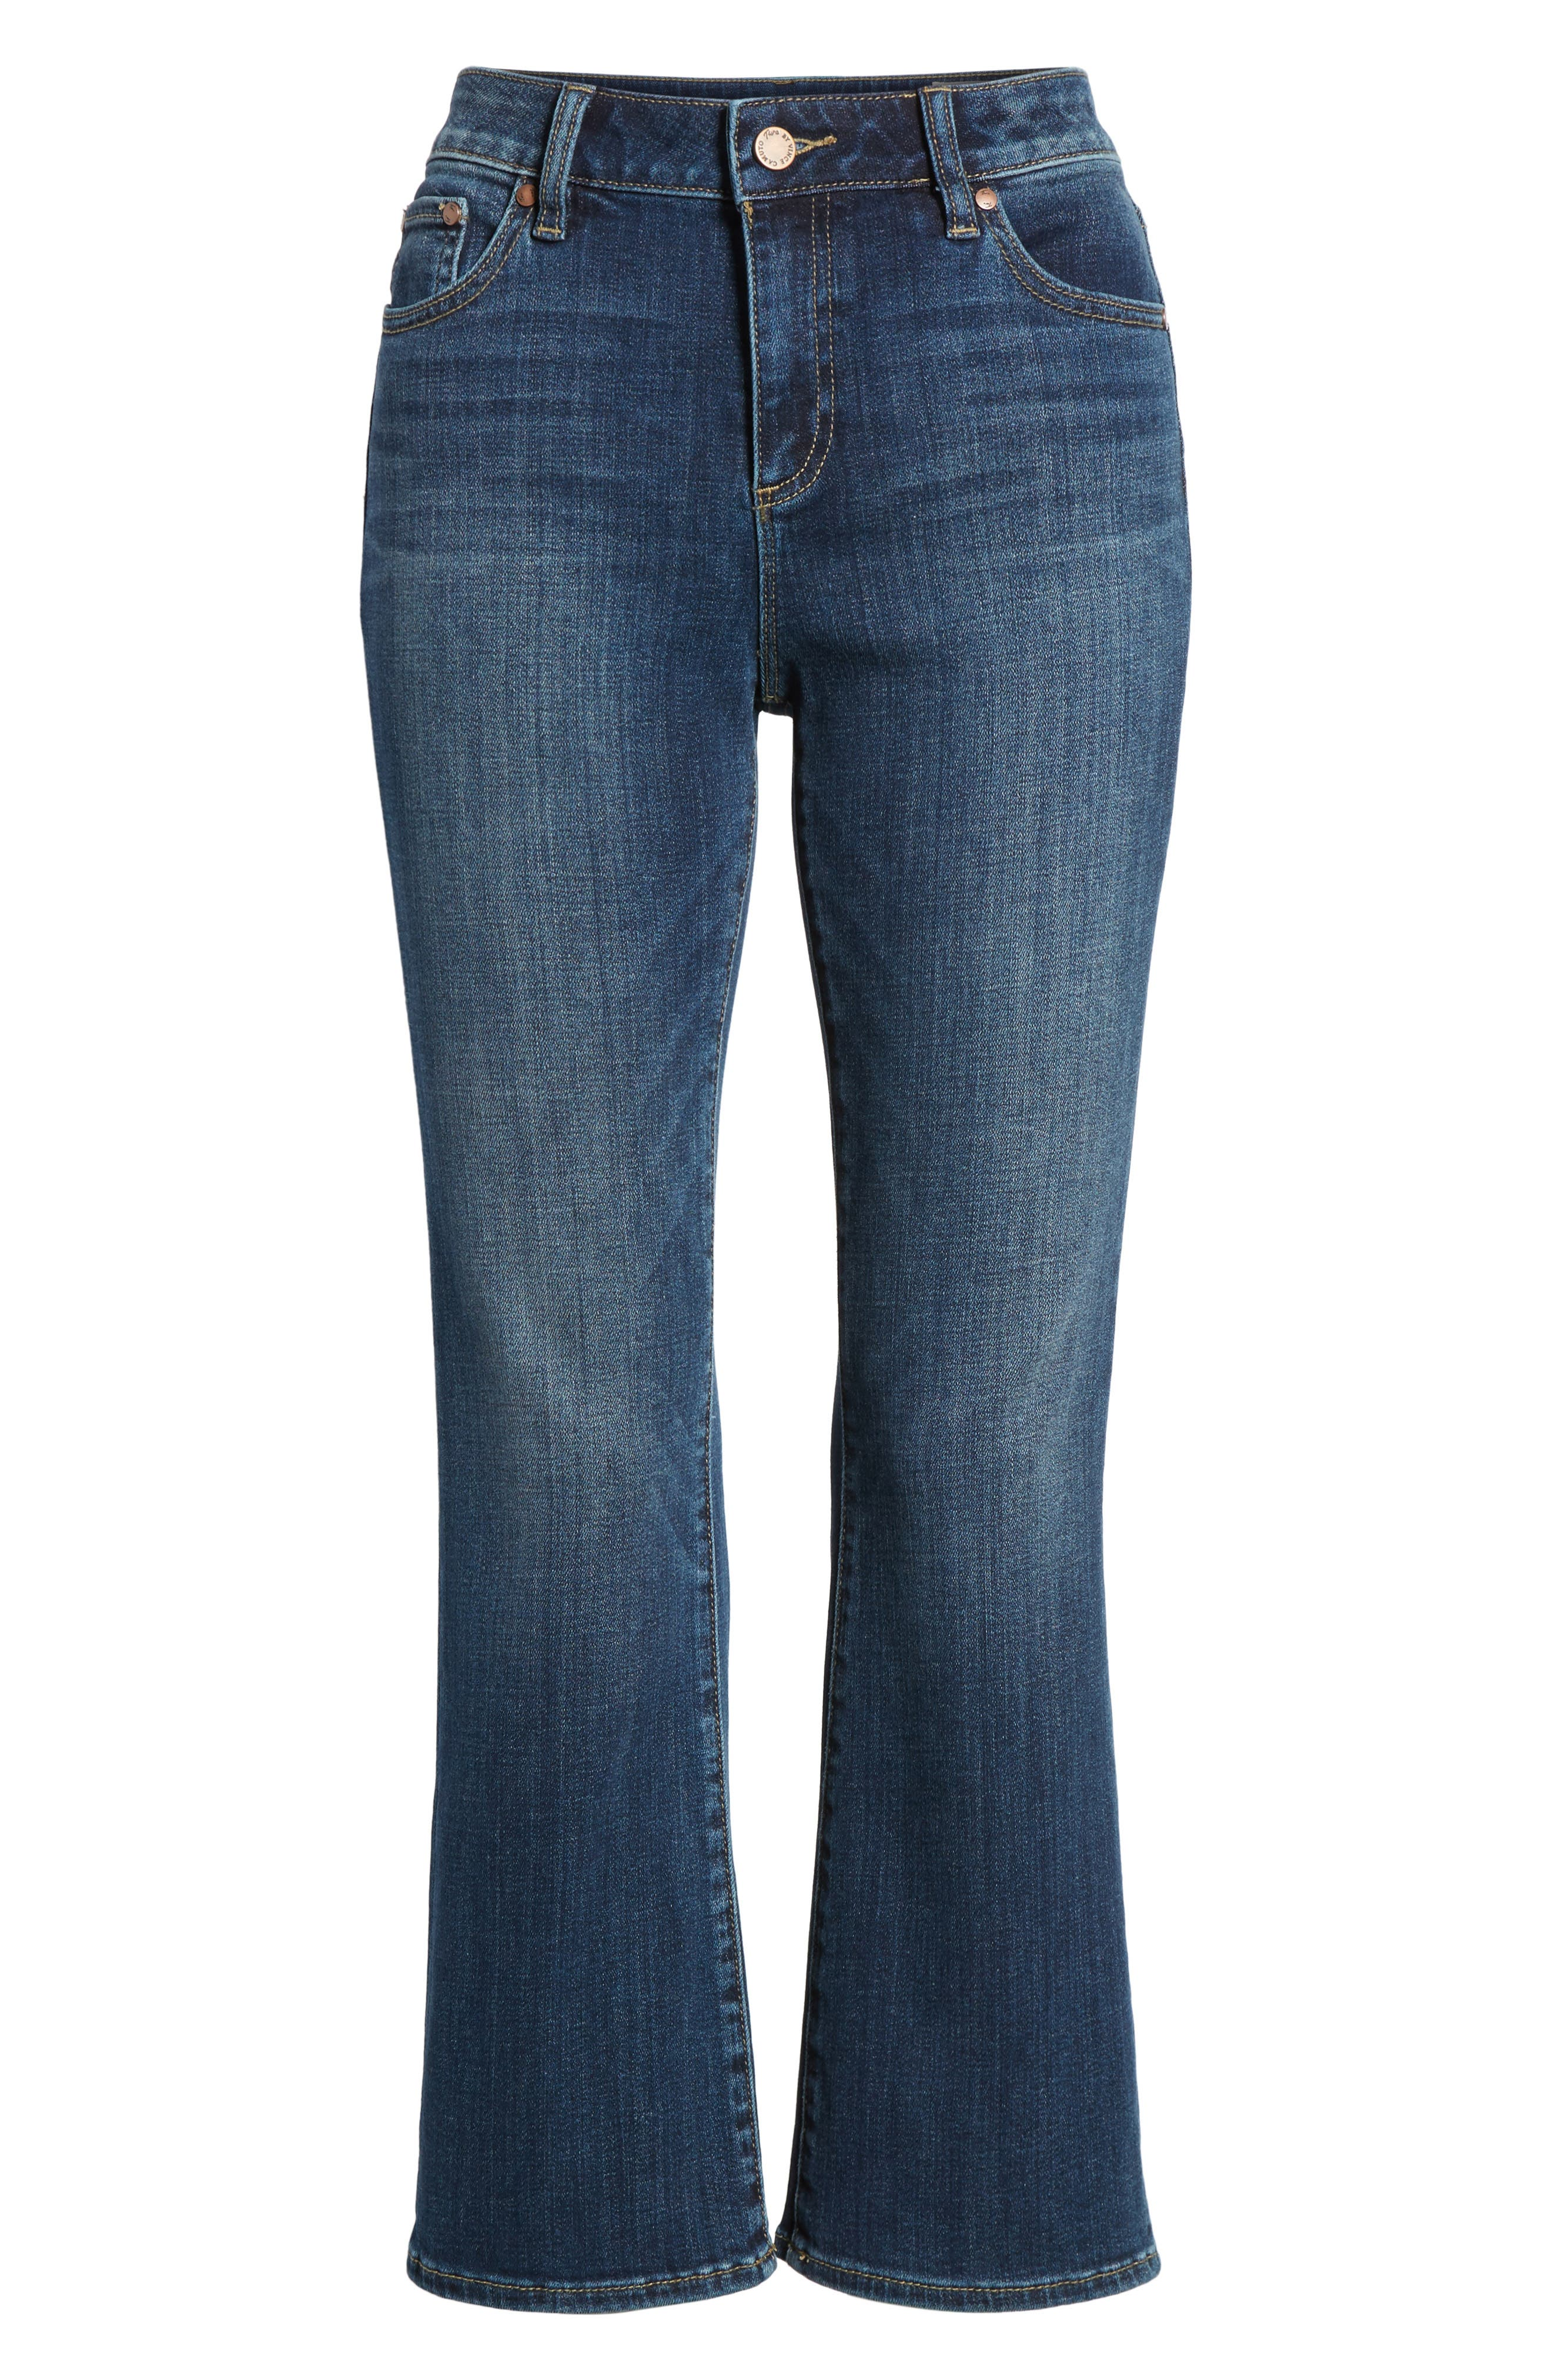 Two by Vince Camuto Cropped Flare Jeans,                             Alternate thumbnail 6, color,                             MID VINTAGE